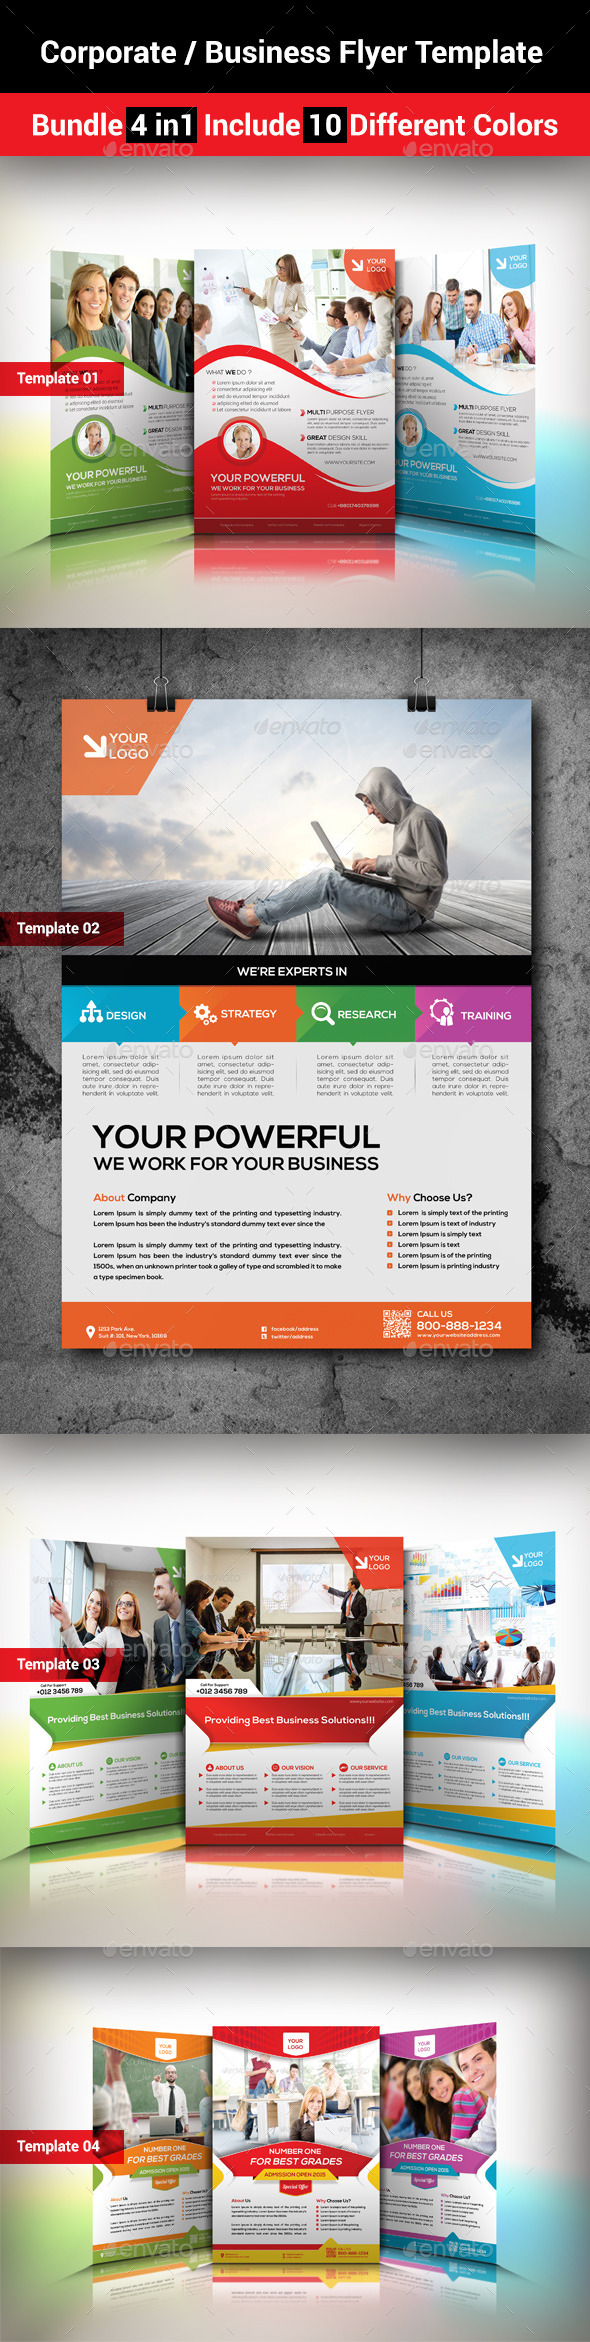 GraphicRiver Corporate Business Flyer Template Bundle 4 in1 9091475